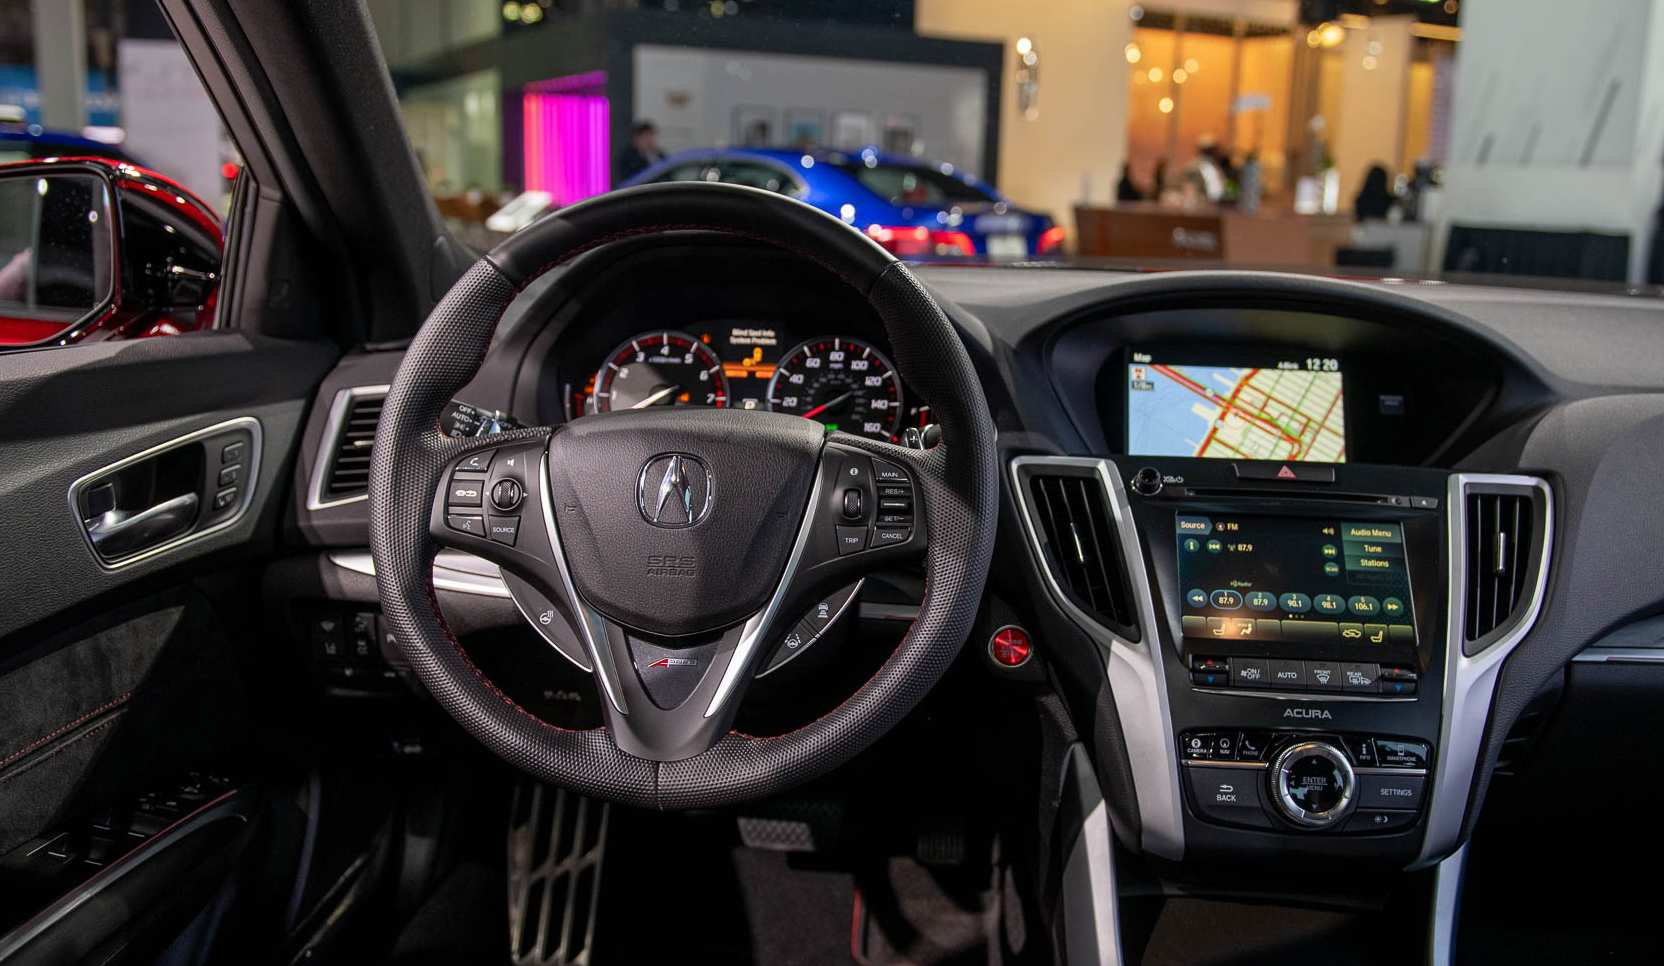 76 Concept of 2020 Acura Tlx Interior Engine for 2020 Acura Tlx Interior